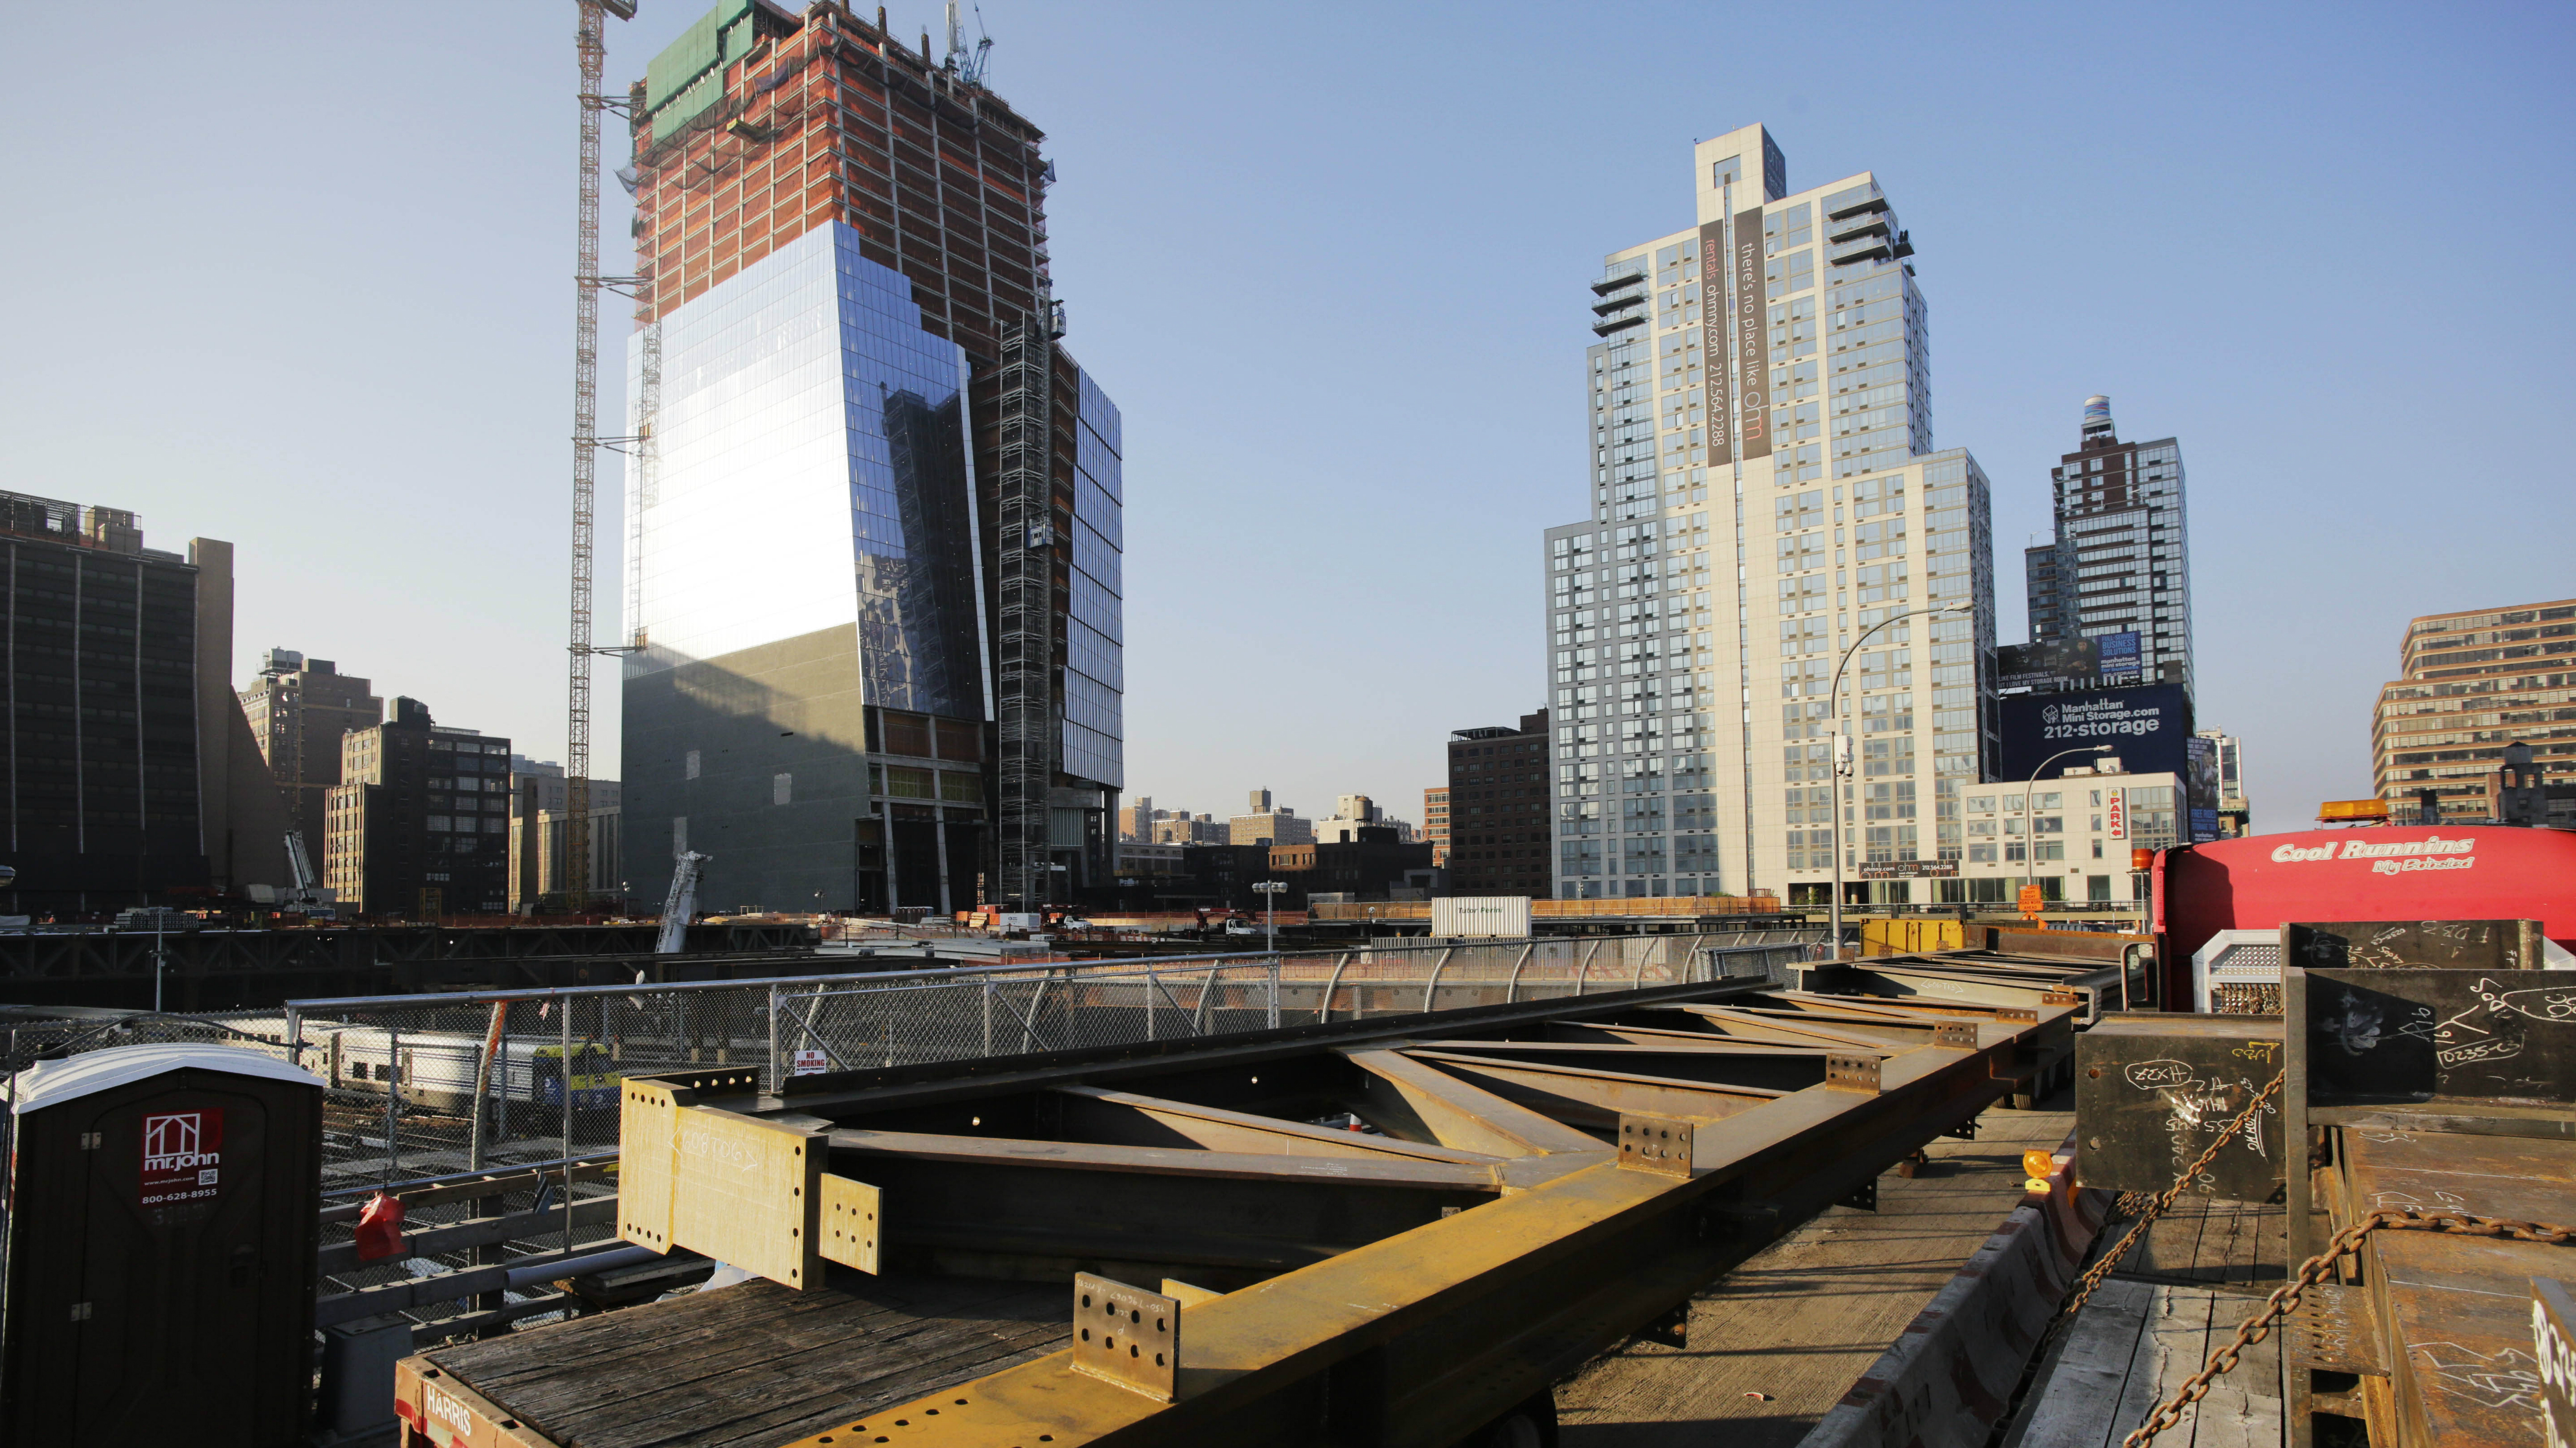 Massive steel structural pieces arrive on flatbed trucks for delivery to the Hudson Yards construction site, Friday, May 8, 2015 in New York. The steel pieces are the first shipment of a 100,000-ton steel order that will be used to complete construction of the 14-acre Eastern Rail Yard platform, a skyscraper that will house Time Warner headquarters, and a retail space with a Neiman Marcus store. The platform is being built over 30 active Long Island Rail Road (LIRR) train tracks, three subsurface rail tunnels utilized by AMTRAK and New Jersey Transit. Hudson Yards is expected to consist of 16 skyscrapers, containing new office, residential, and retail space. The tower under construction, left, is 10 Hudson Yards, the future home of Coach, L'Oreal and SAP.